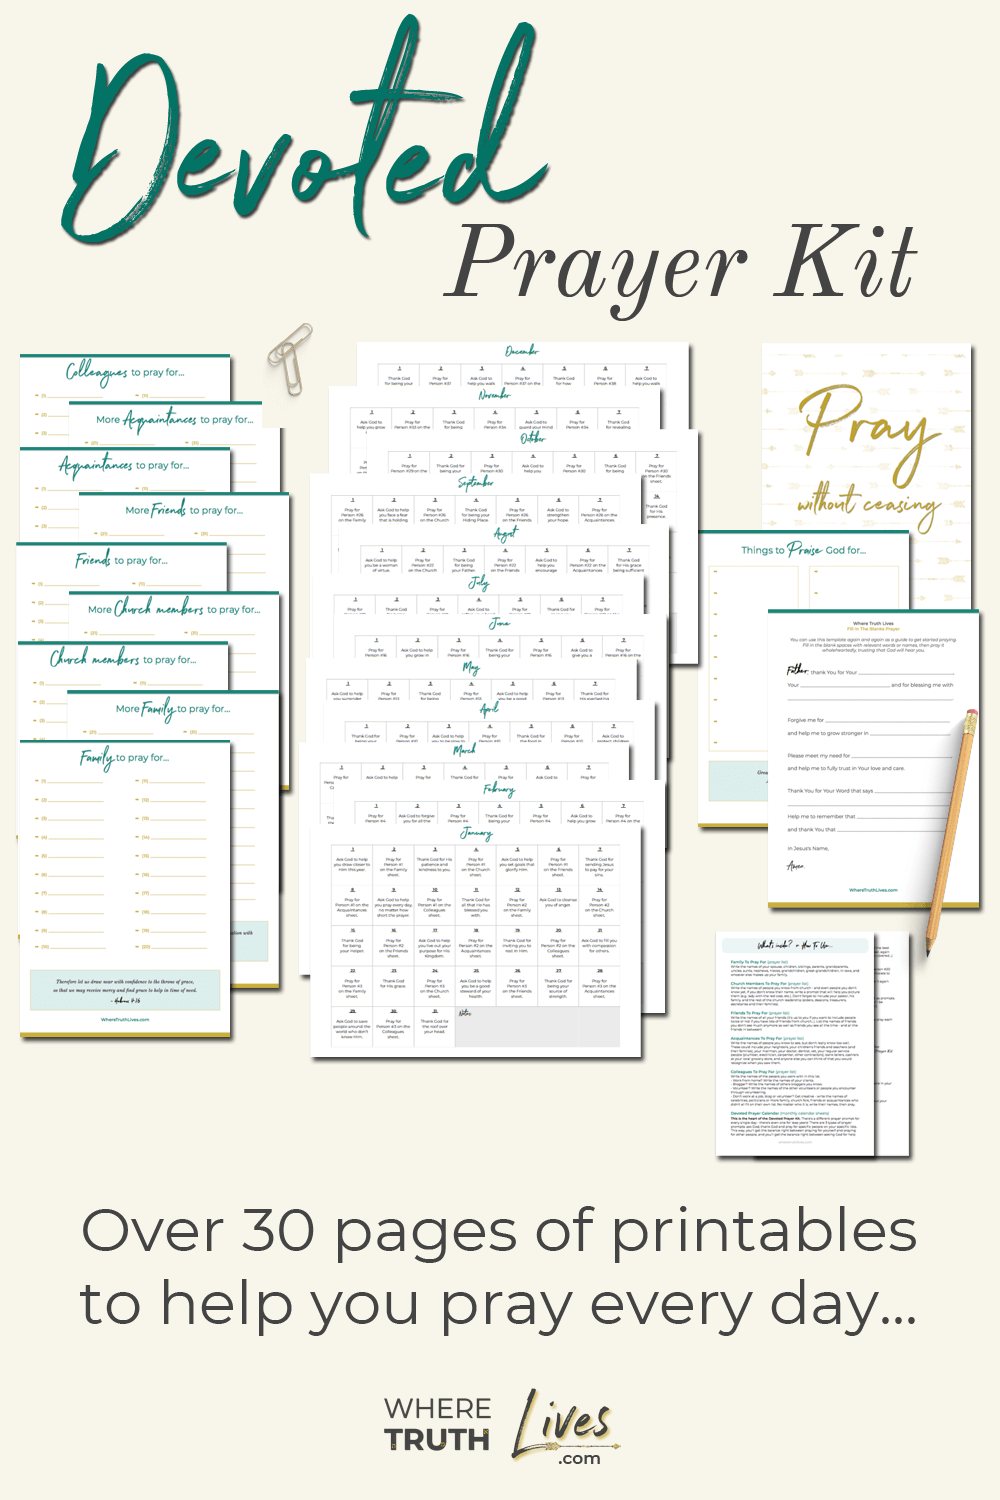 Struggle to pray consistently, daily or purposefully? Finally, there's a solution that will help you stay focused while praying, balance between thanksgiving and prayer requests, and establish a rock-solid routine of praying every day. Introducing: The Devoted Prayer Kit from WhereTruthLives.com. Over 30 pages of printables to help you pray every day. No more struggling to find time, focus or topics. Simply print, and systematically pray.